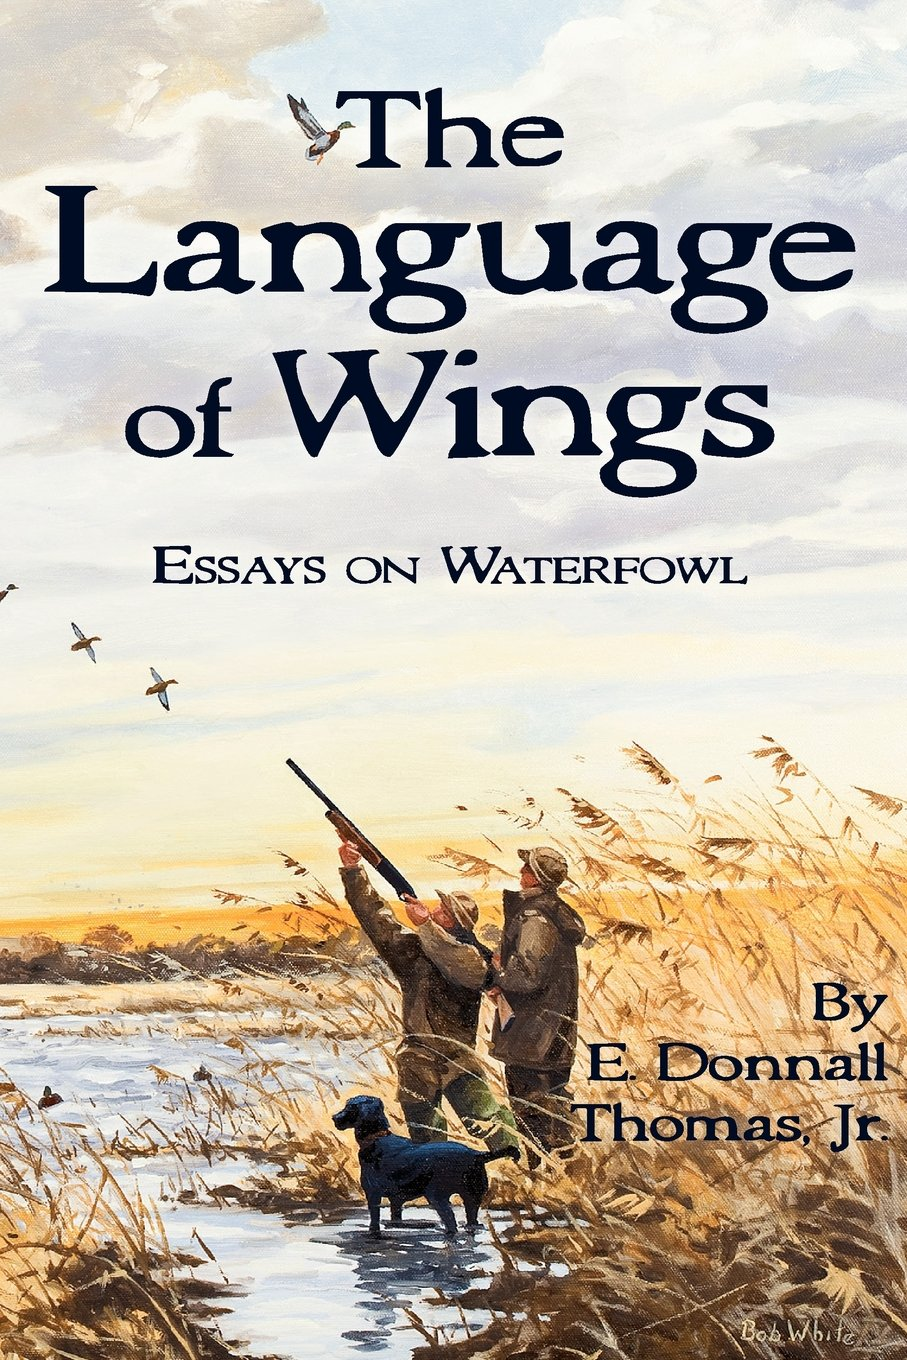 The Language of Wings: Essays on Waterfowl by Brand: Ravens Eye Press LLC